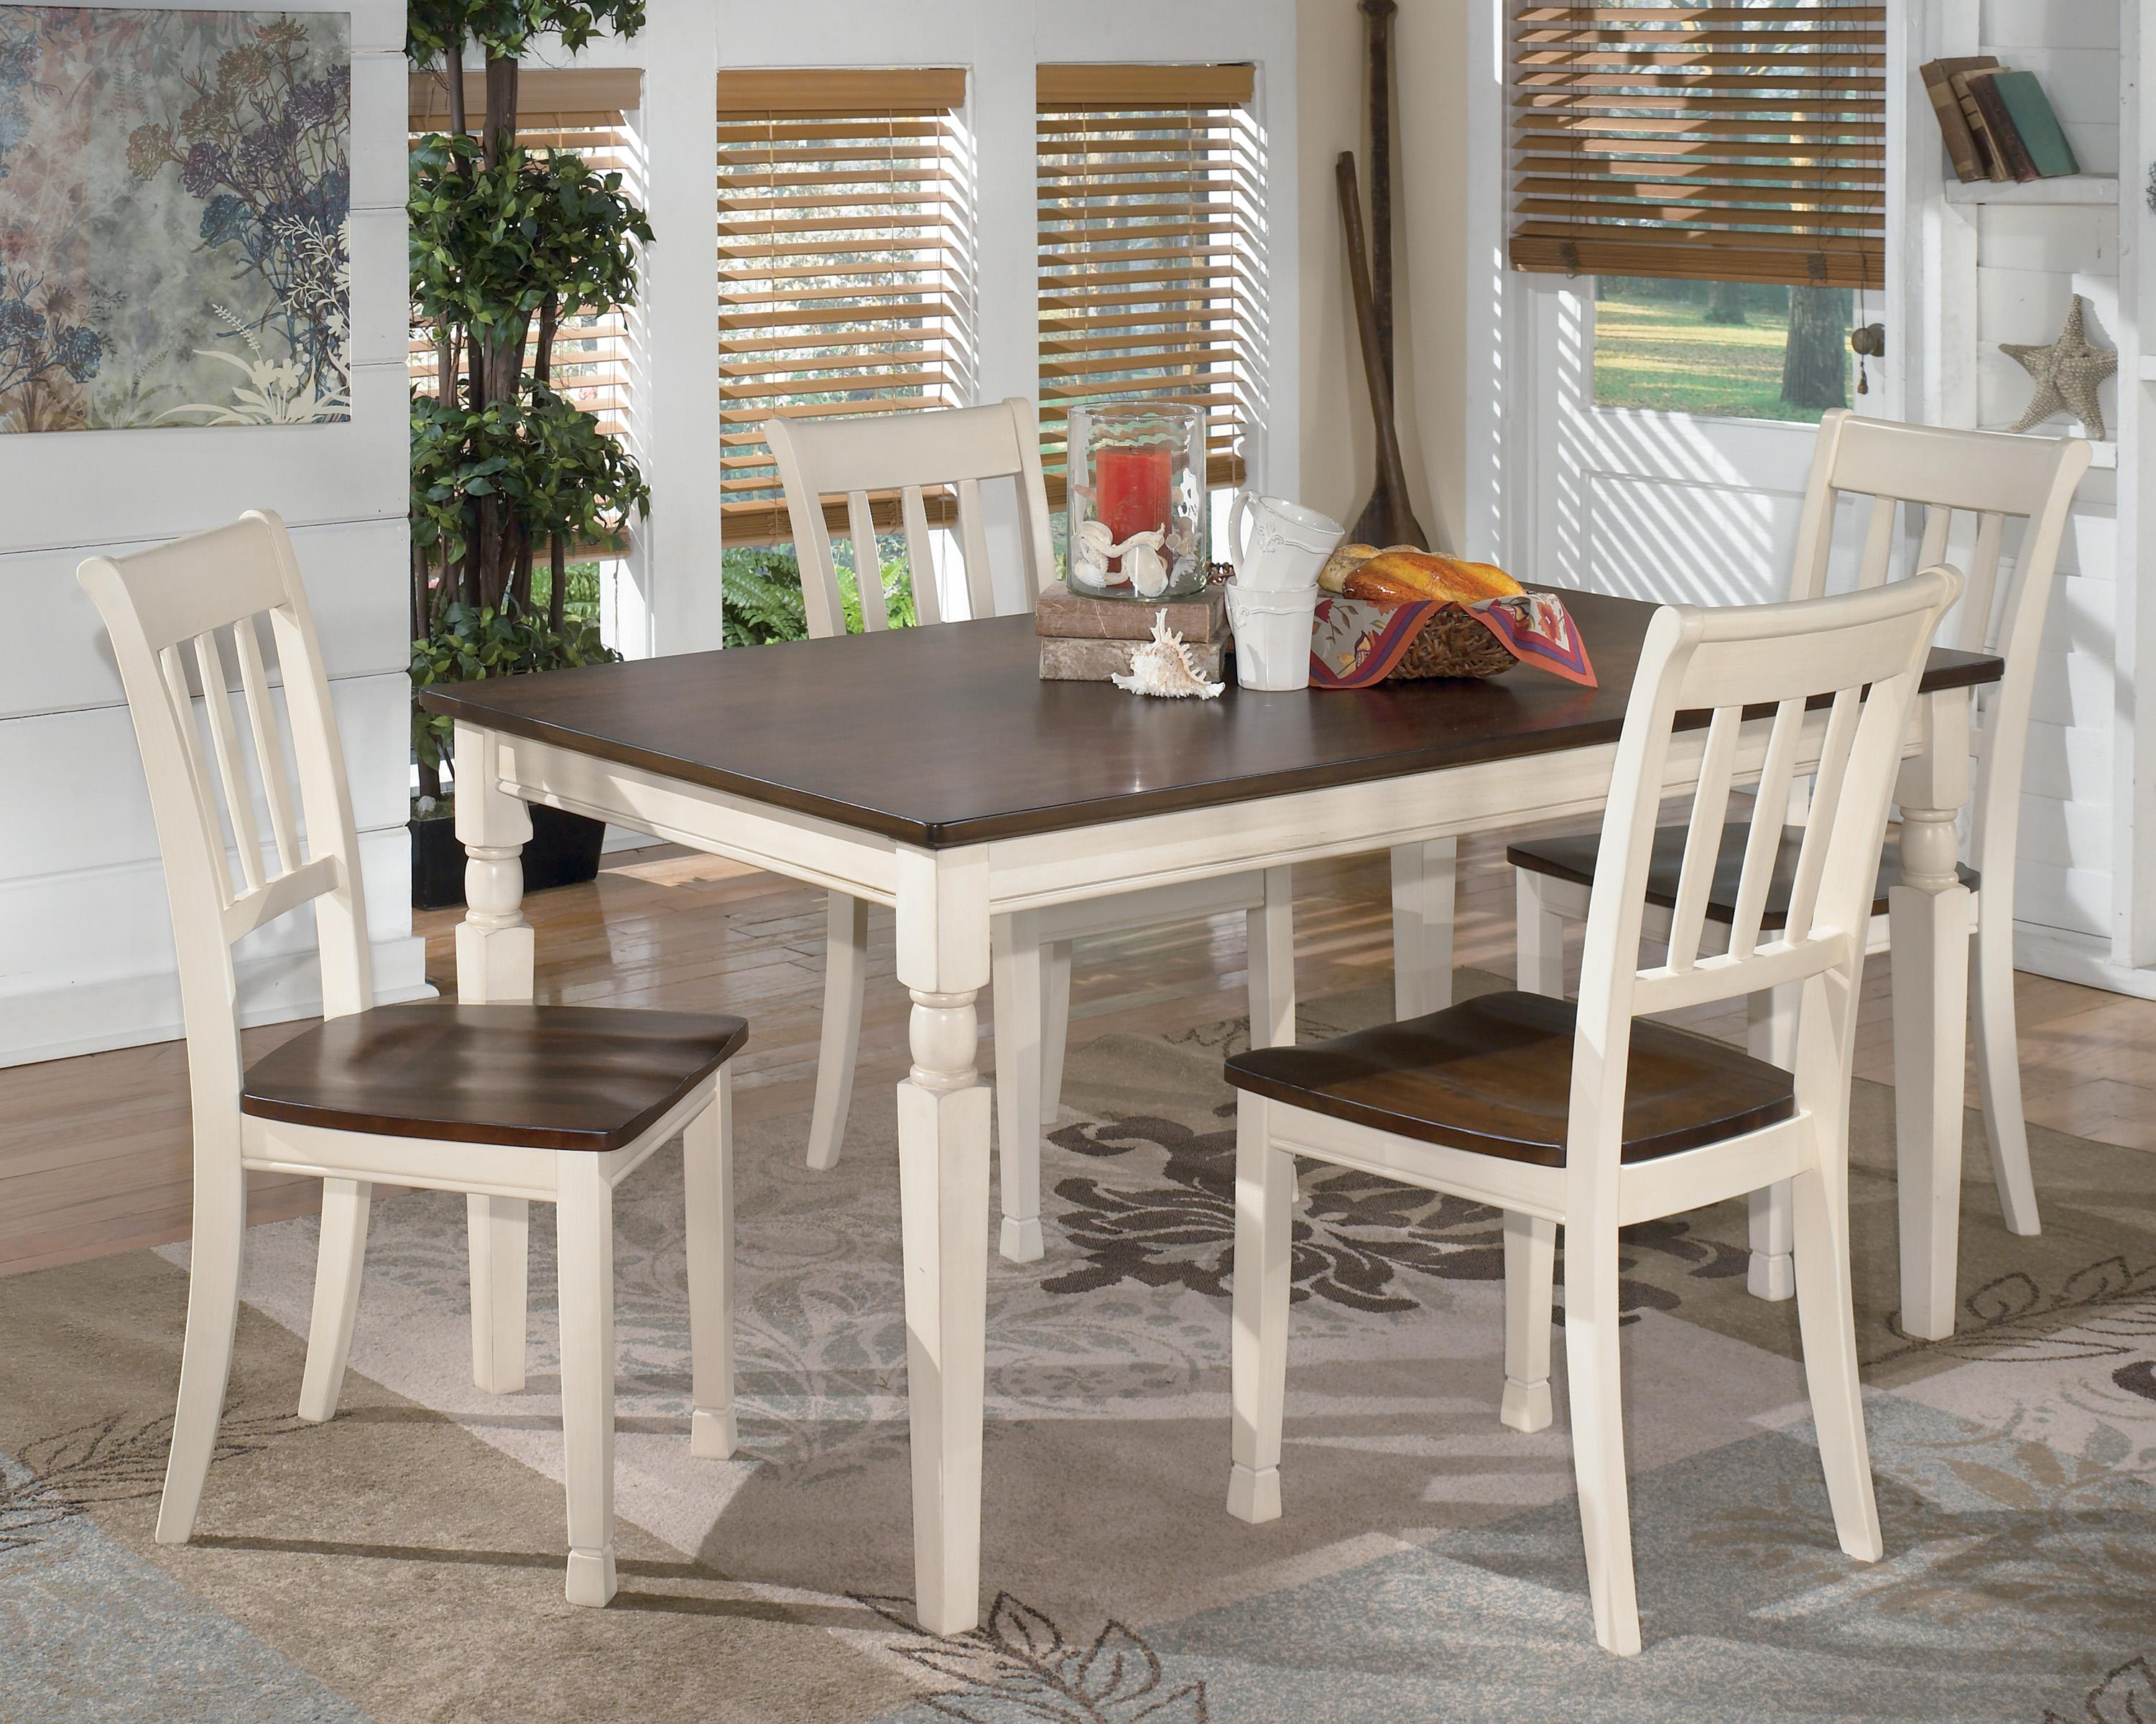 signature design by ashley whitesburg 5piece rectangular dining table set item number